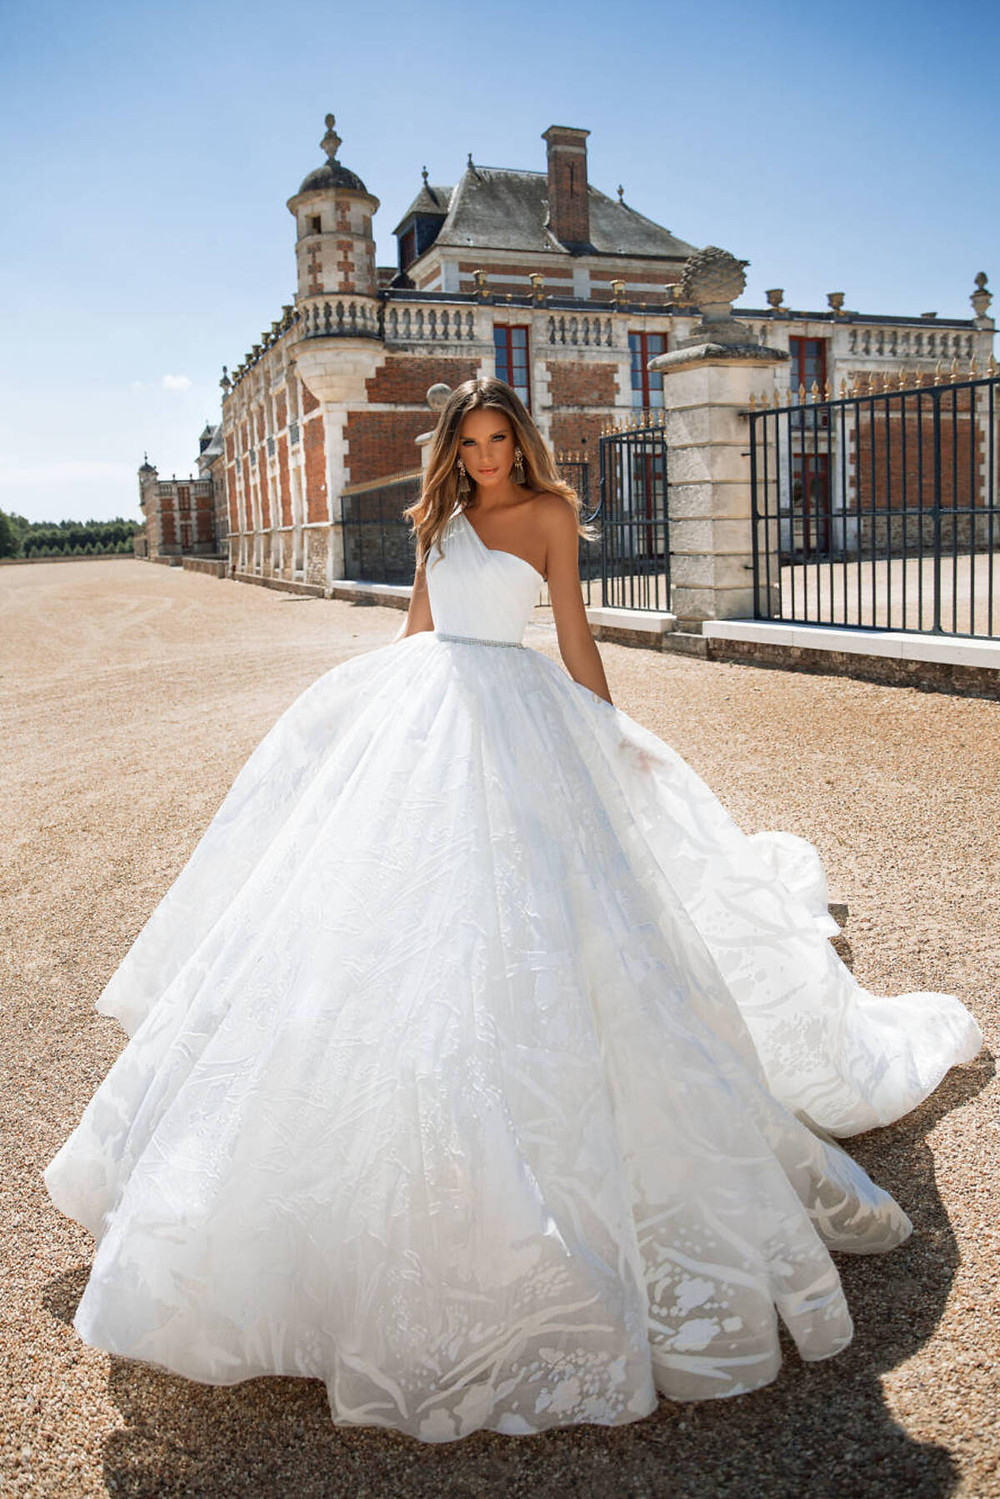 A Milla Nova beautiful one shoulder ball gown wedding dress, with a big skirt and a floral pattern